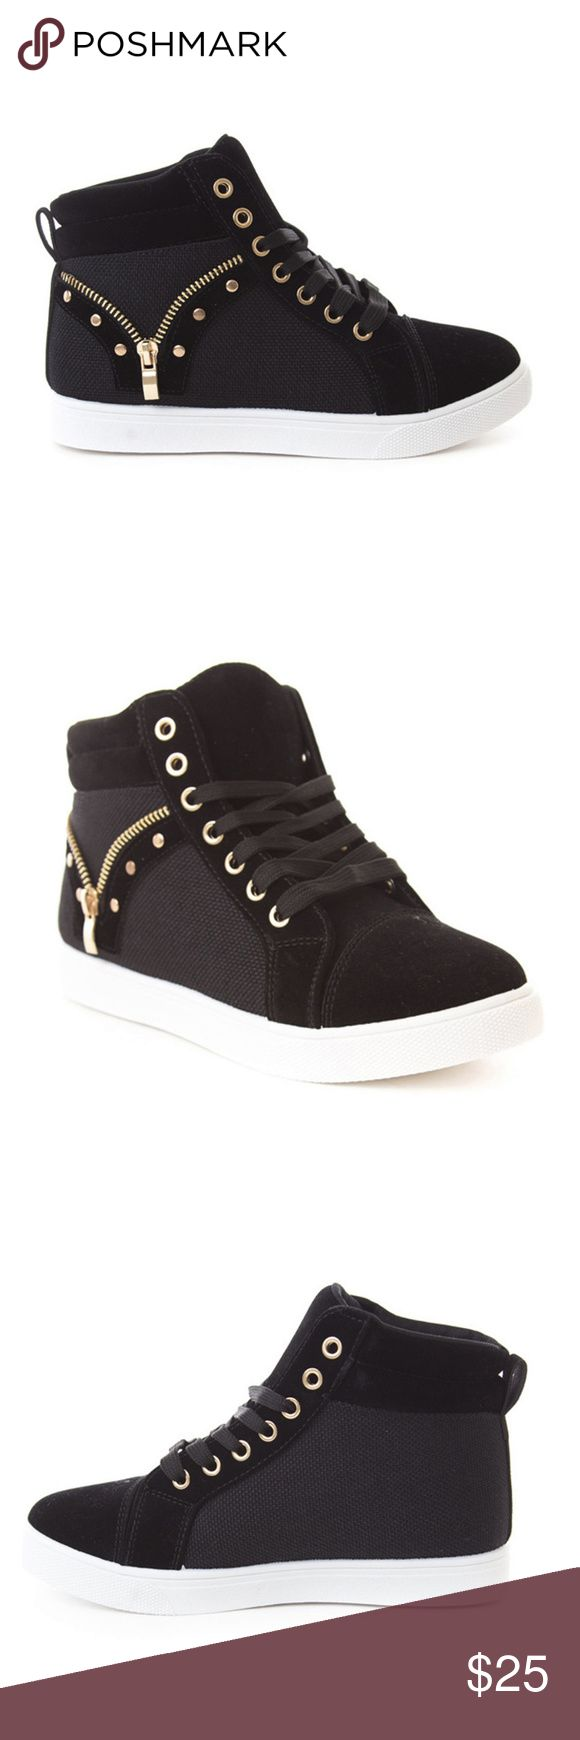 "Women's High Top Casual Sneaker with ""V"" Zipper You can be in style with these fashionable, hip-hop, basketball-inspired, faux suede and cloth sneakers.  You can have the style without the high price tag with the open ""V"" zipper and metal studs.  Heel height is approximately 1"". SOHO Shoes Shoes Athletic Shoes"